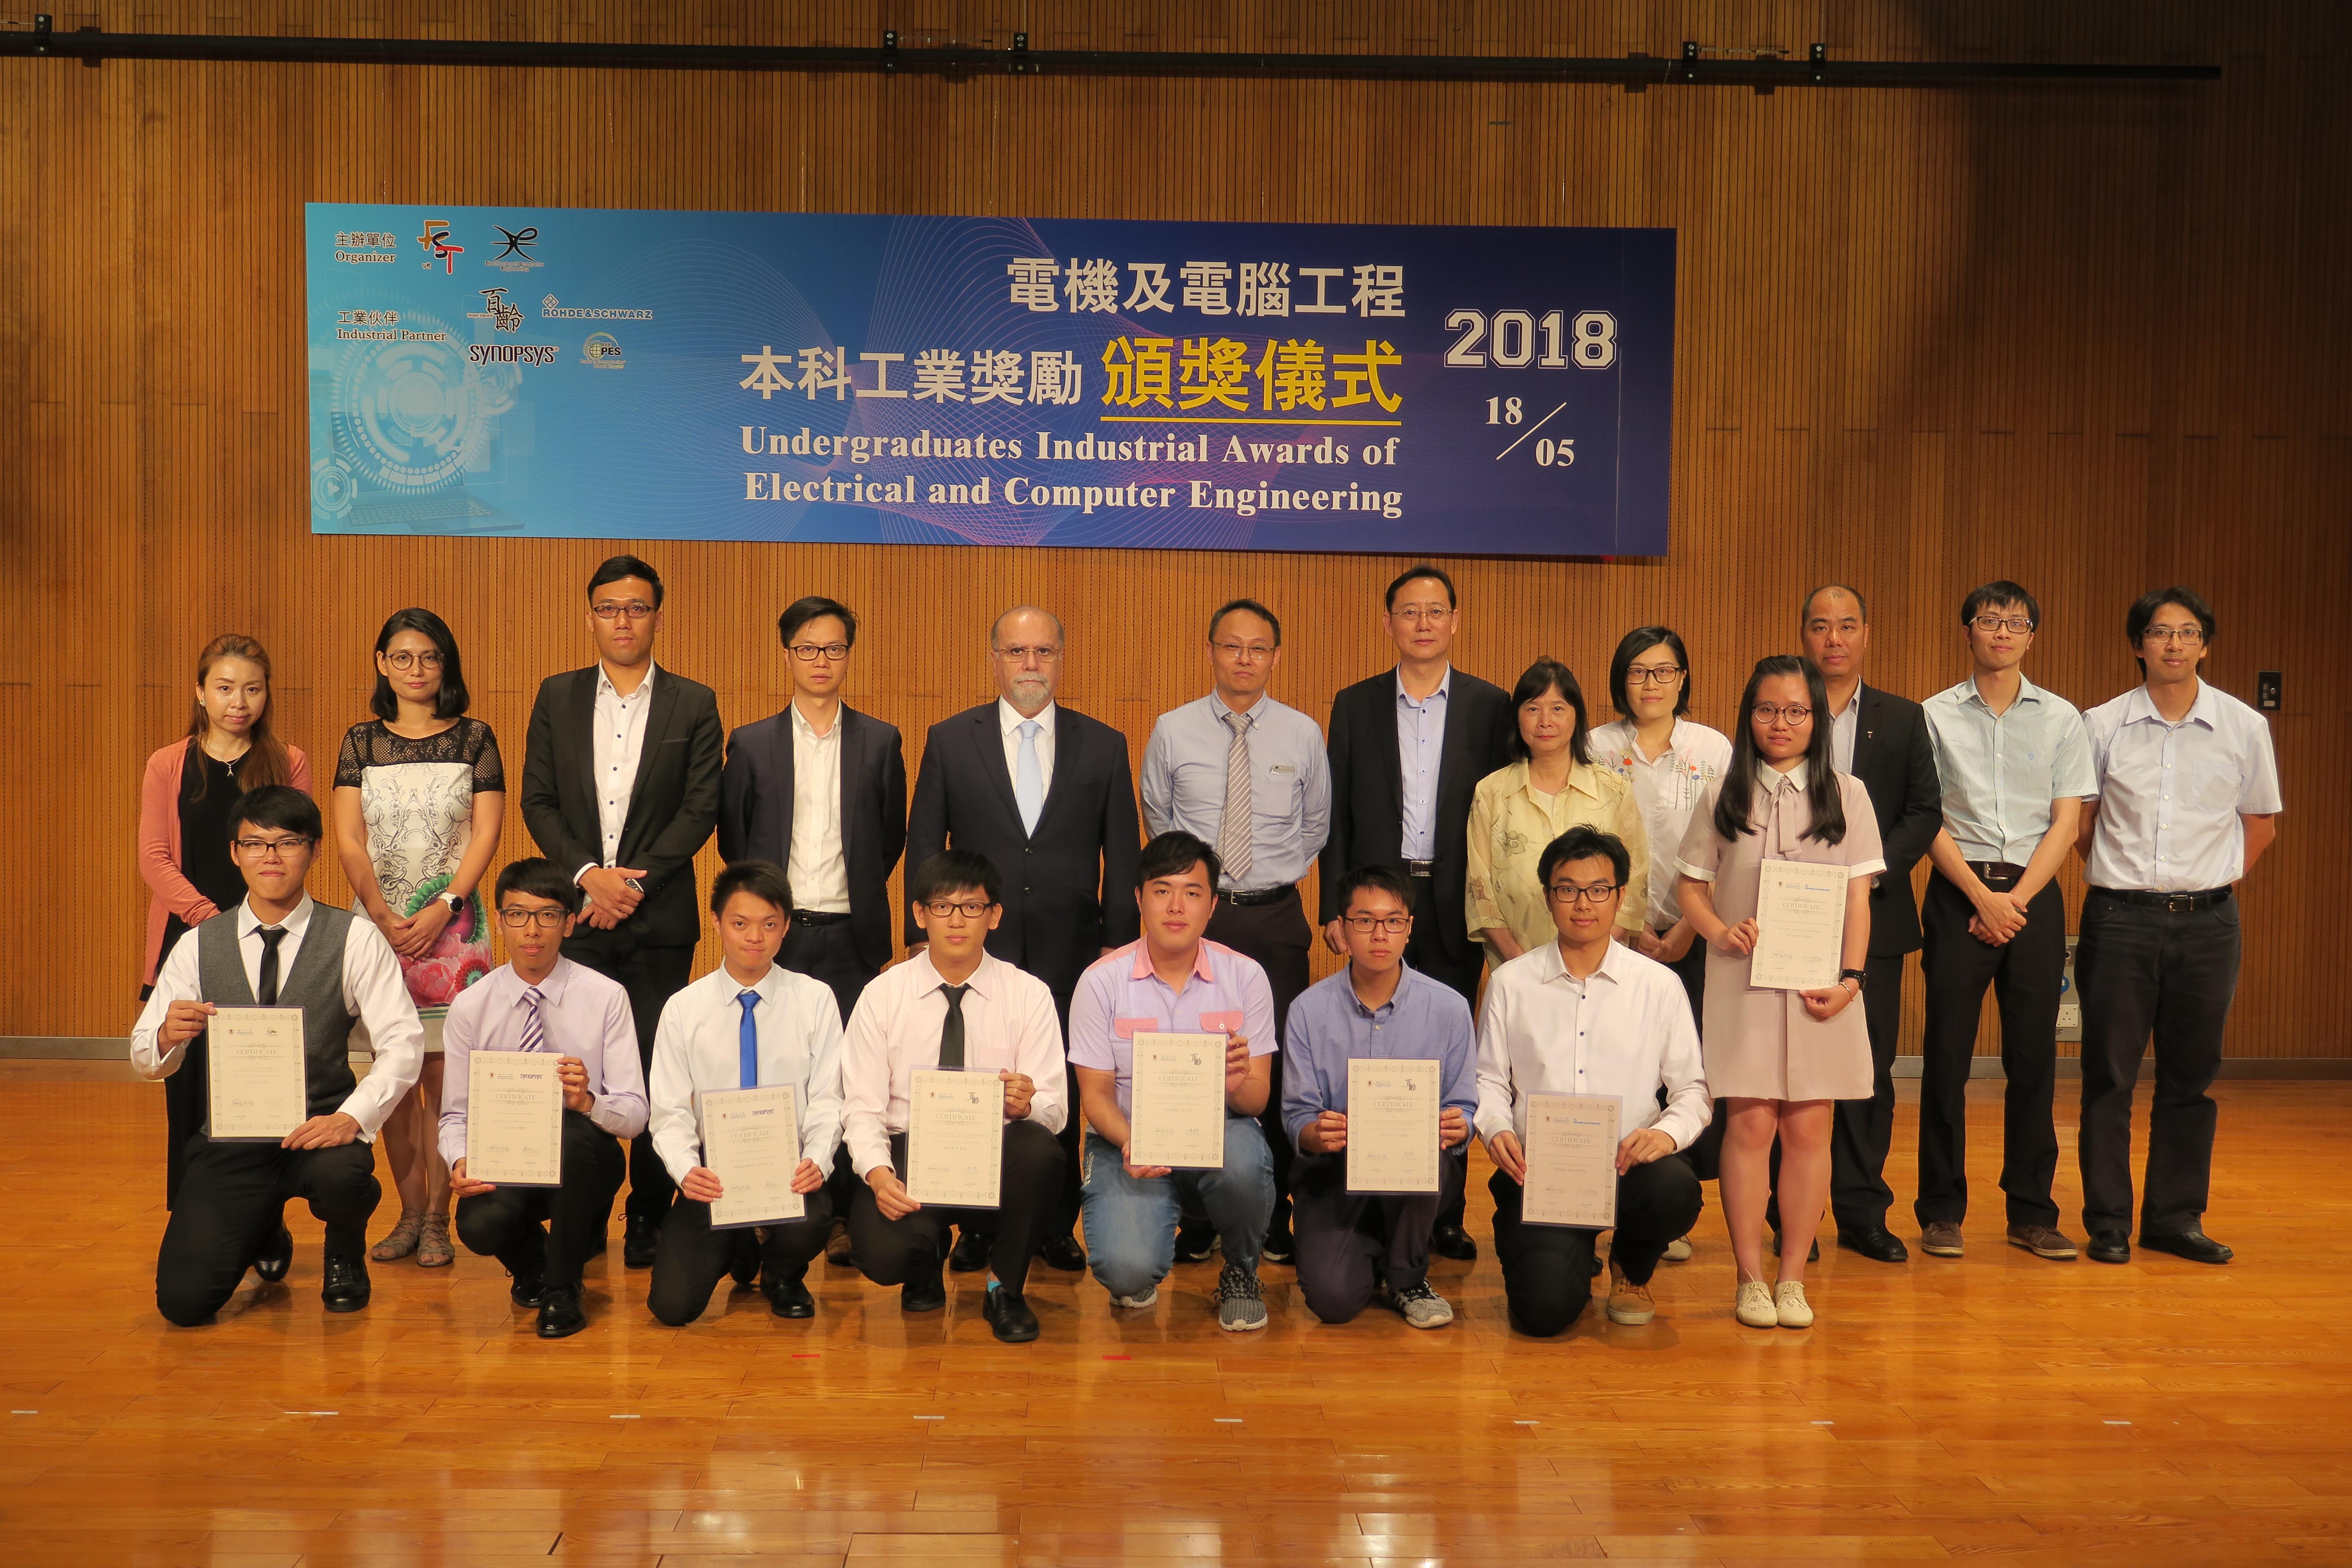 Eight students from UM's Department of Electrical and Computer Engineering have received industry awards